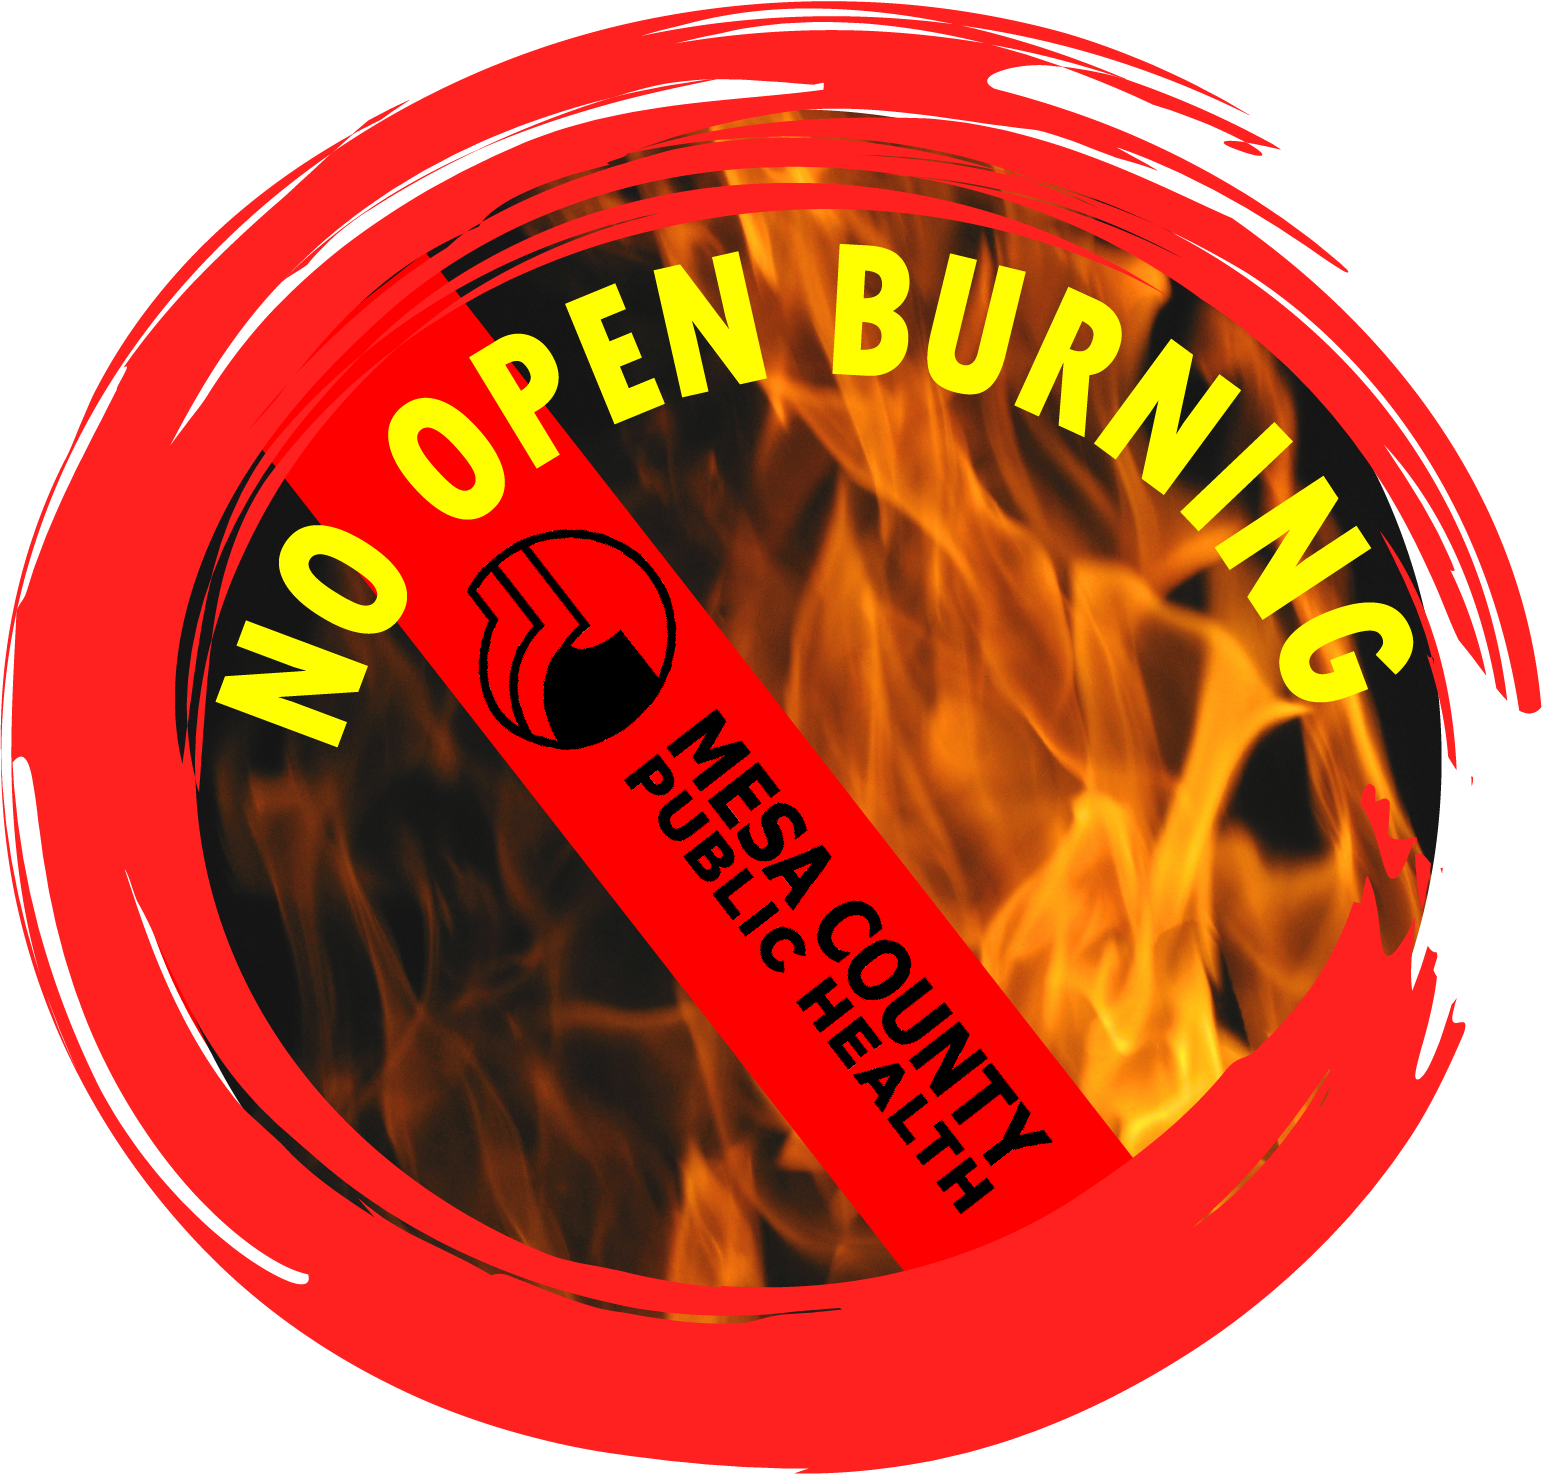 Air Watch Alert – No Open Burning on April 30